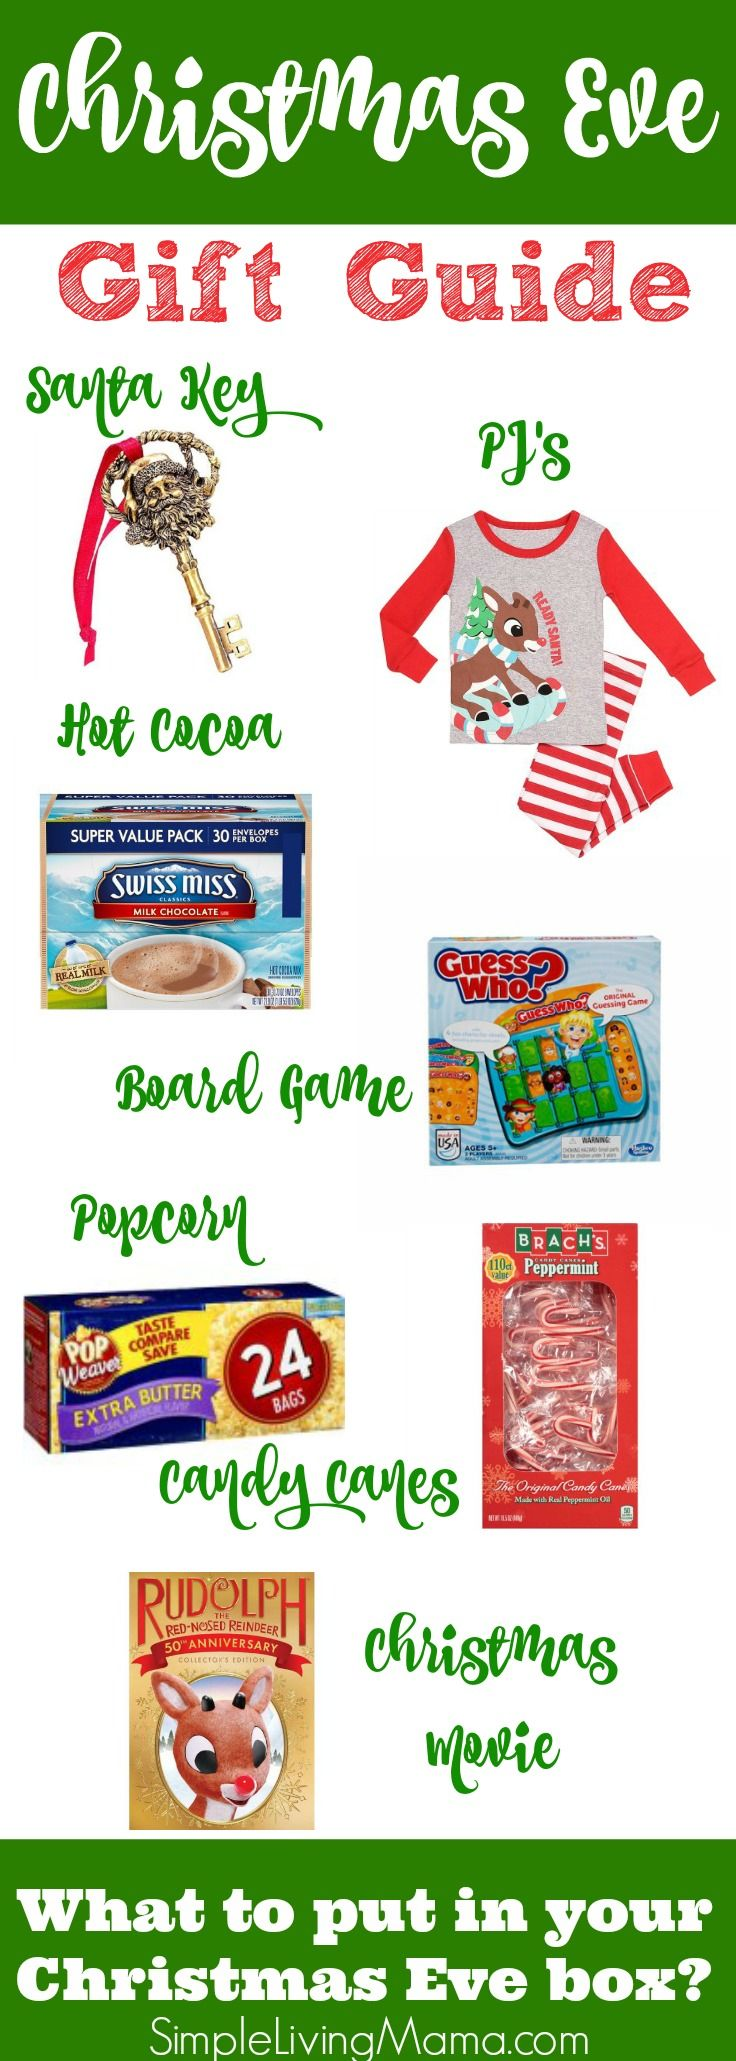 Christmas eve gift game ideas